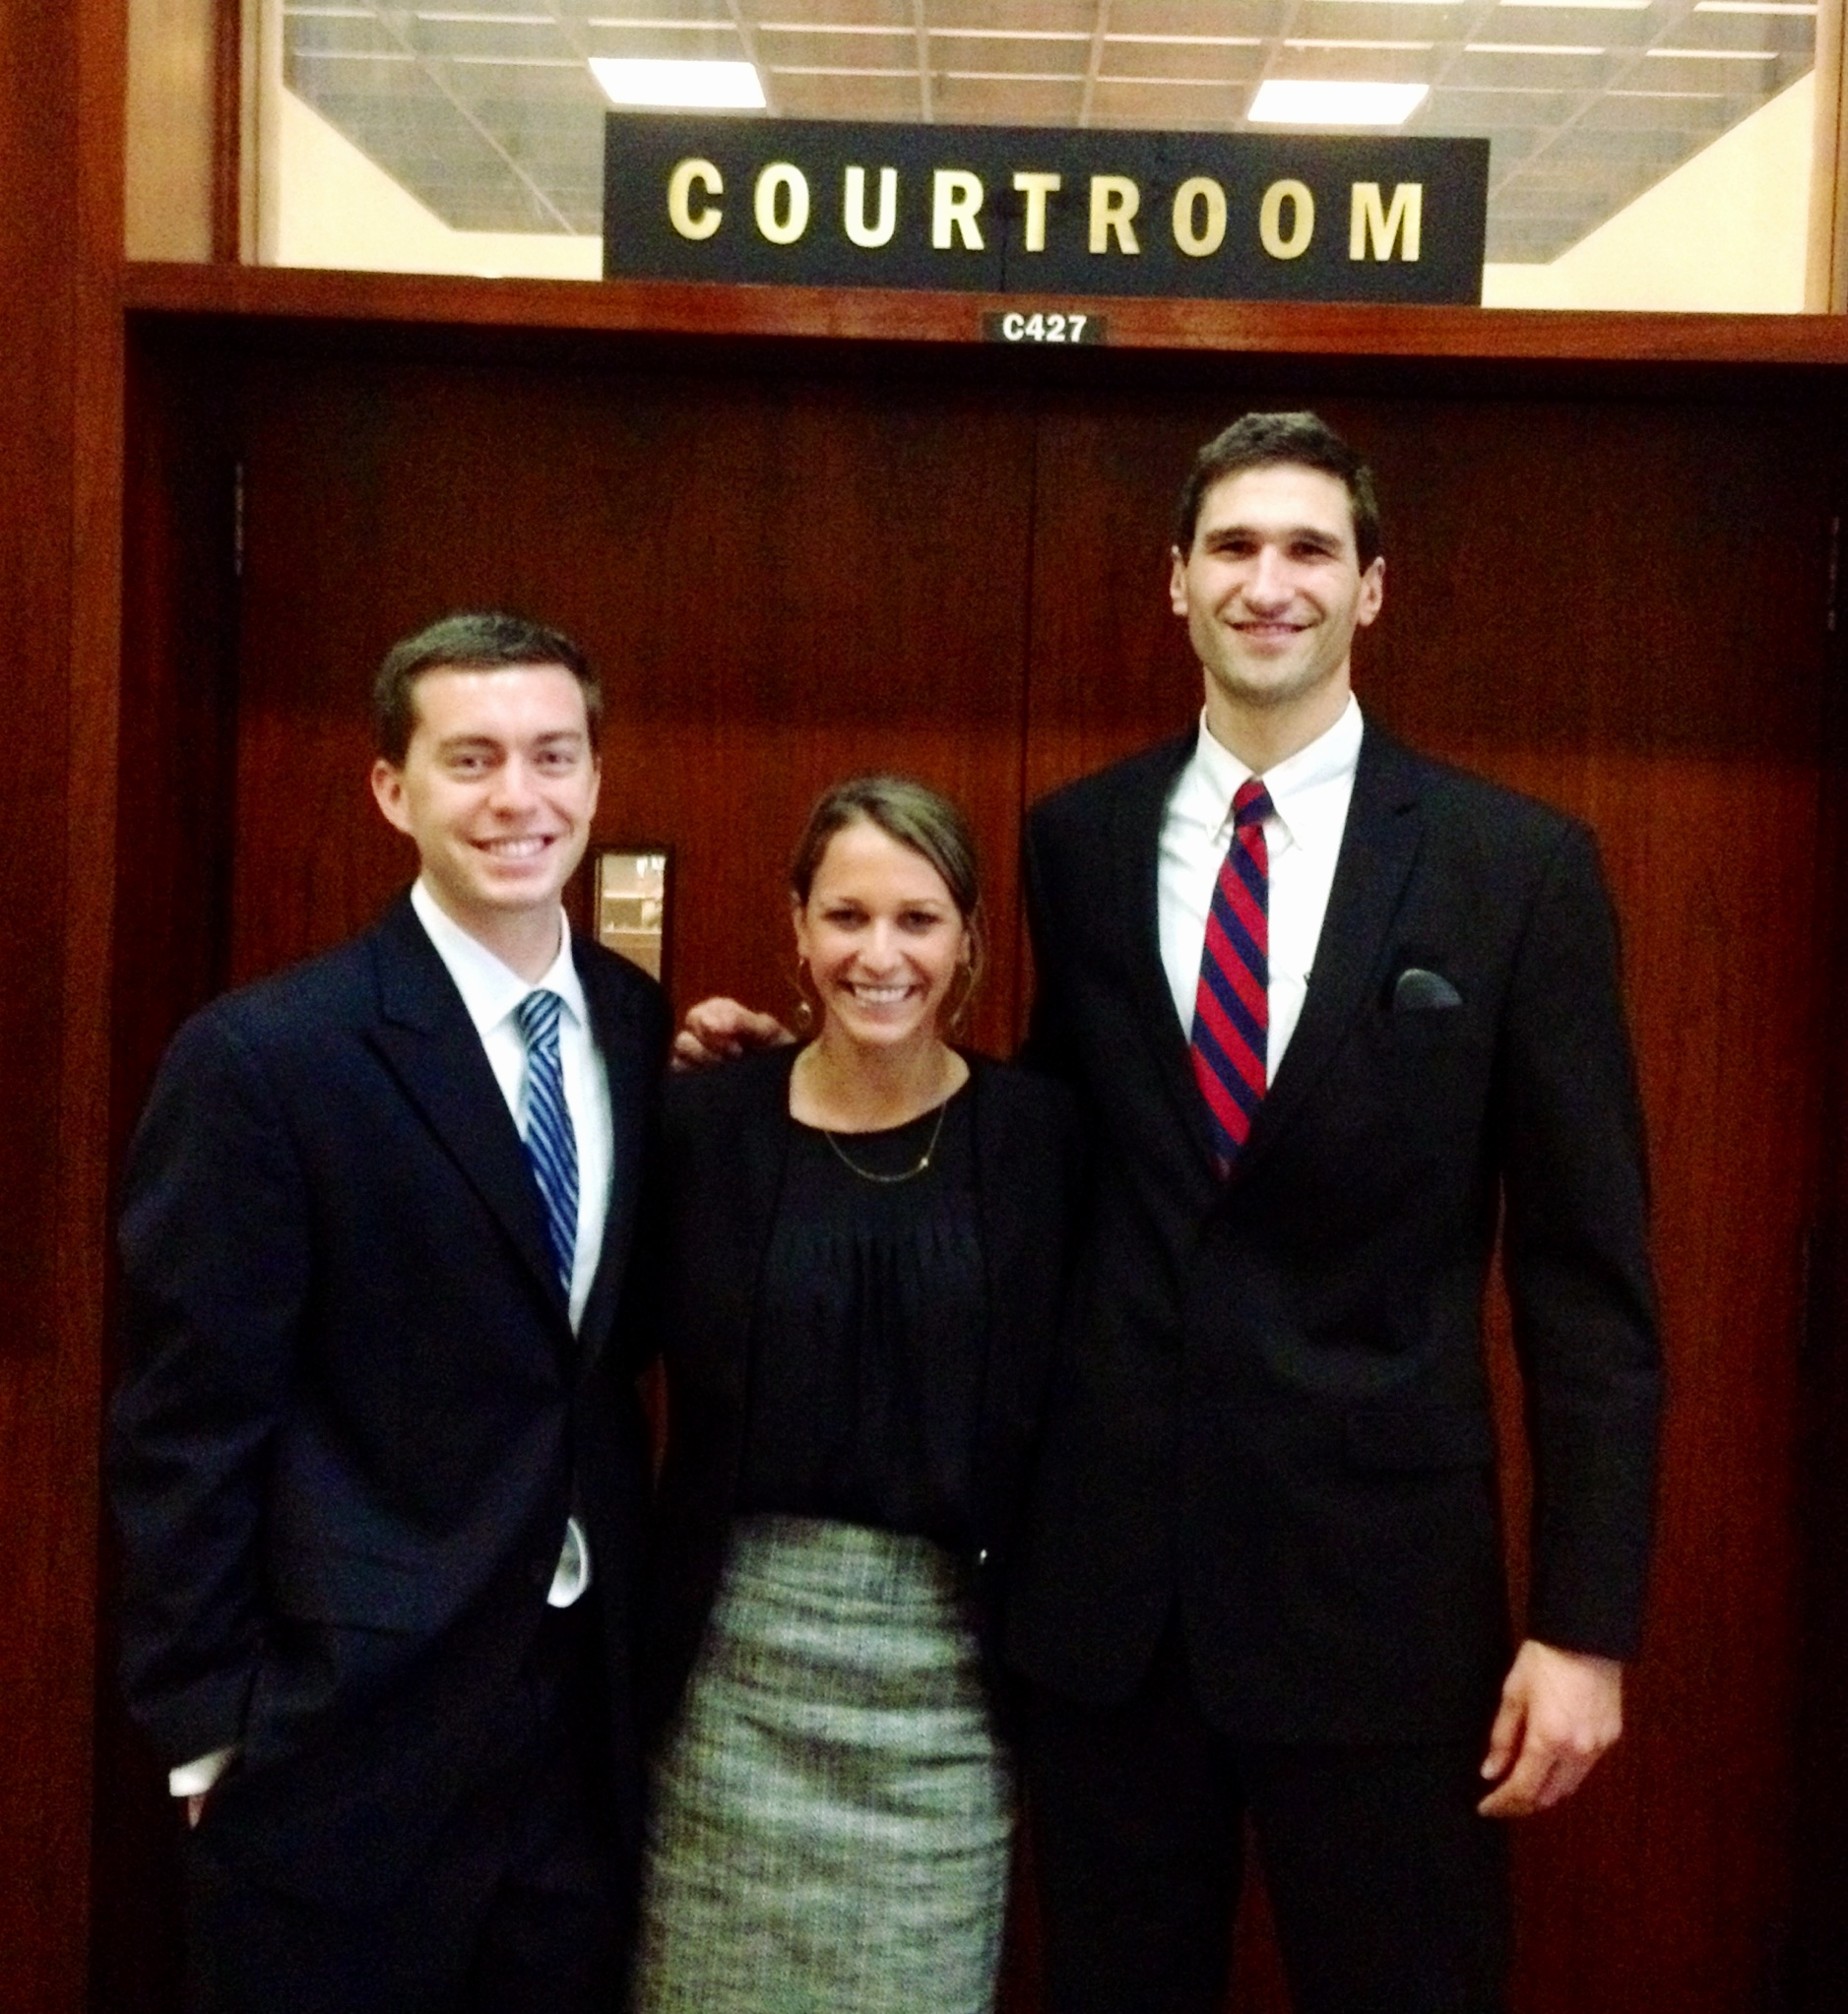 Three Wake Forest Law School students -- Tee Hassold ('15), Evan Leadem ('15) and Brooke Loucks ('15) -- are competing Feb. 26 -28 at the Mardis Gras Sports Law Moot Court Competition in New Orleans.